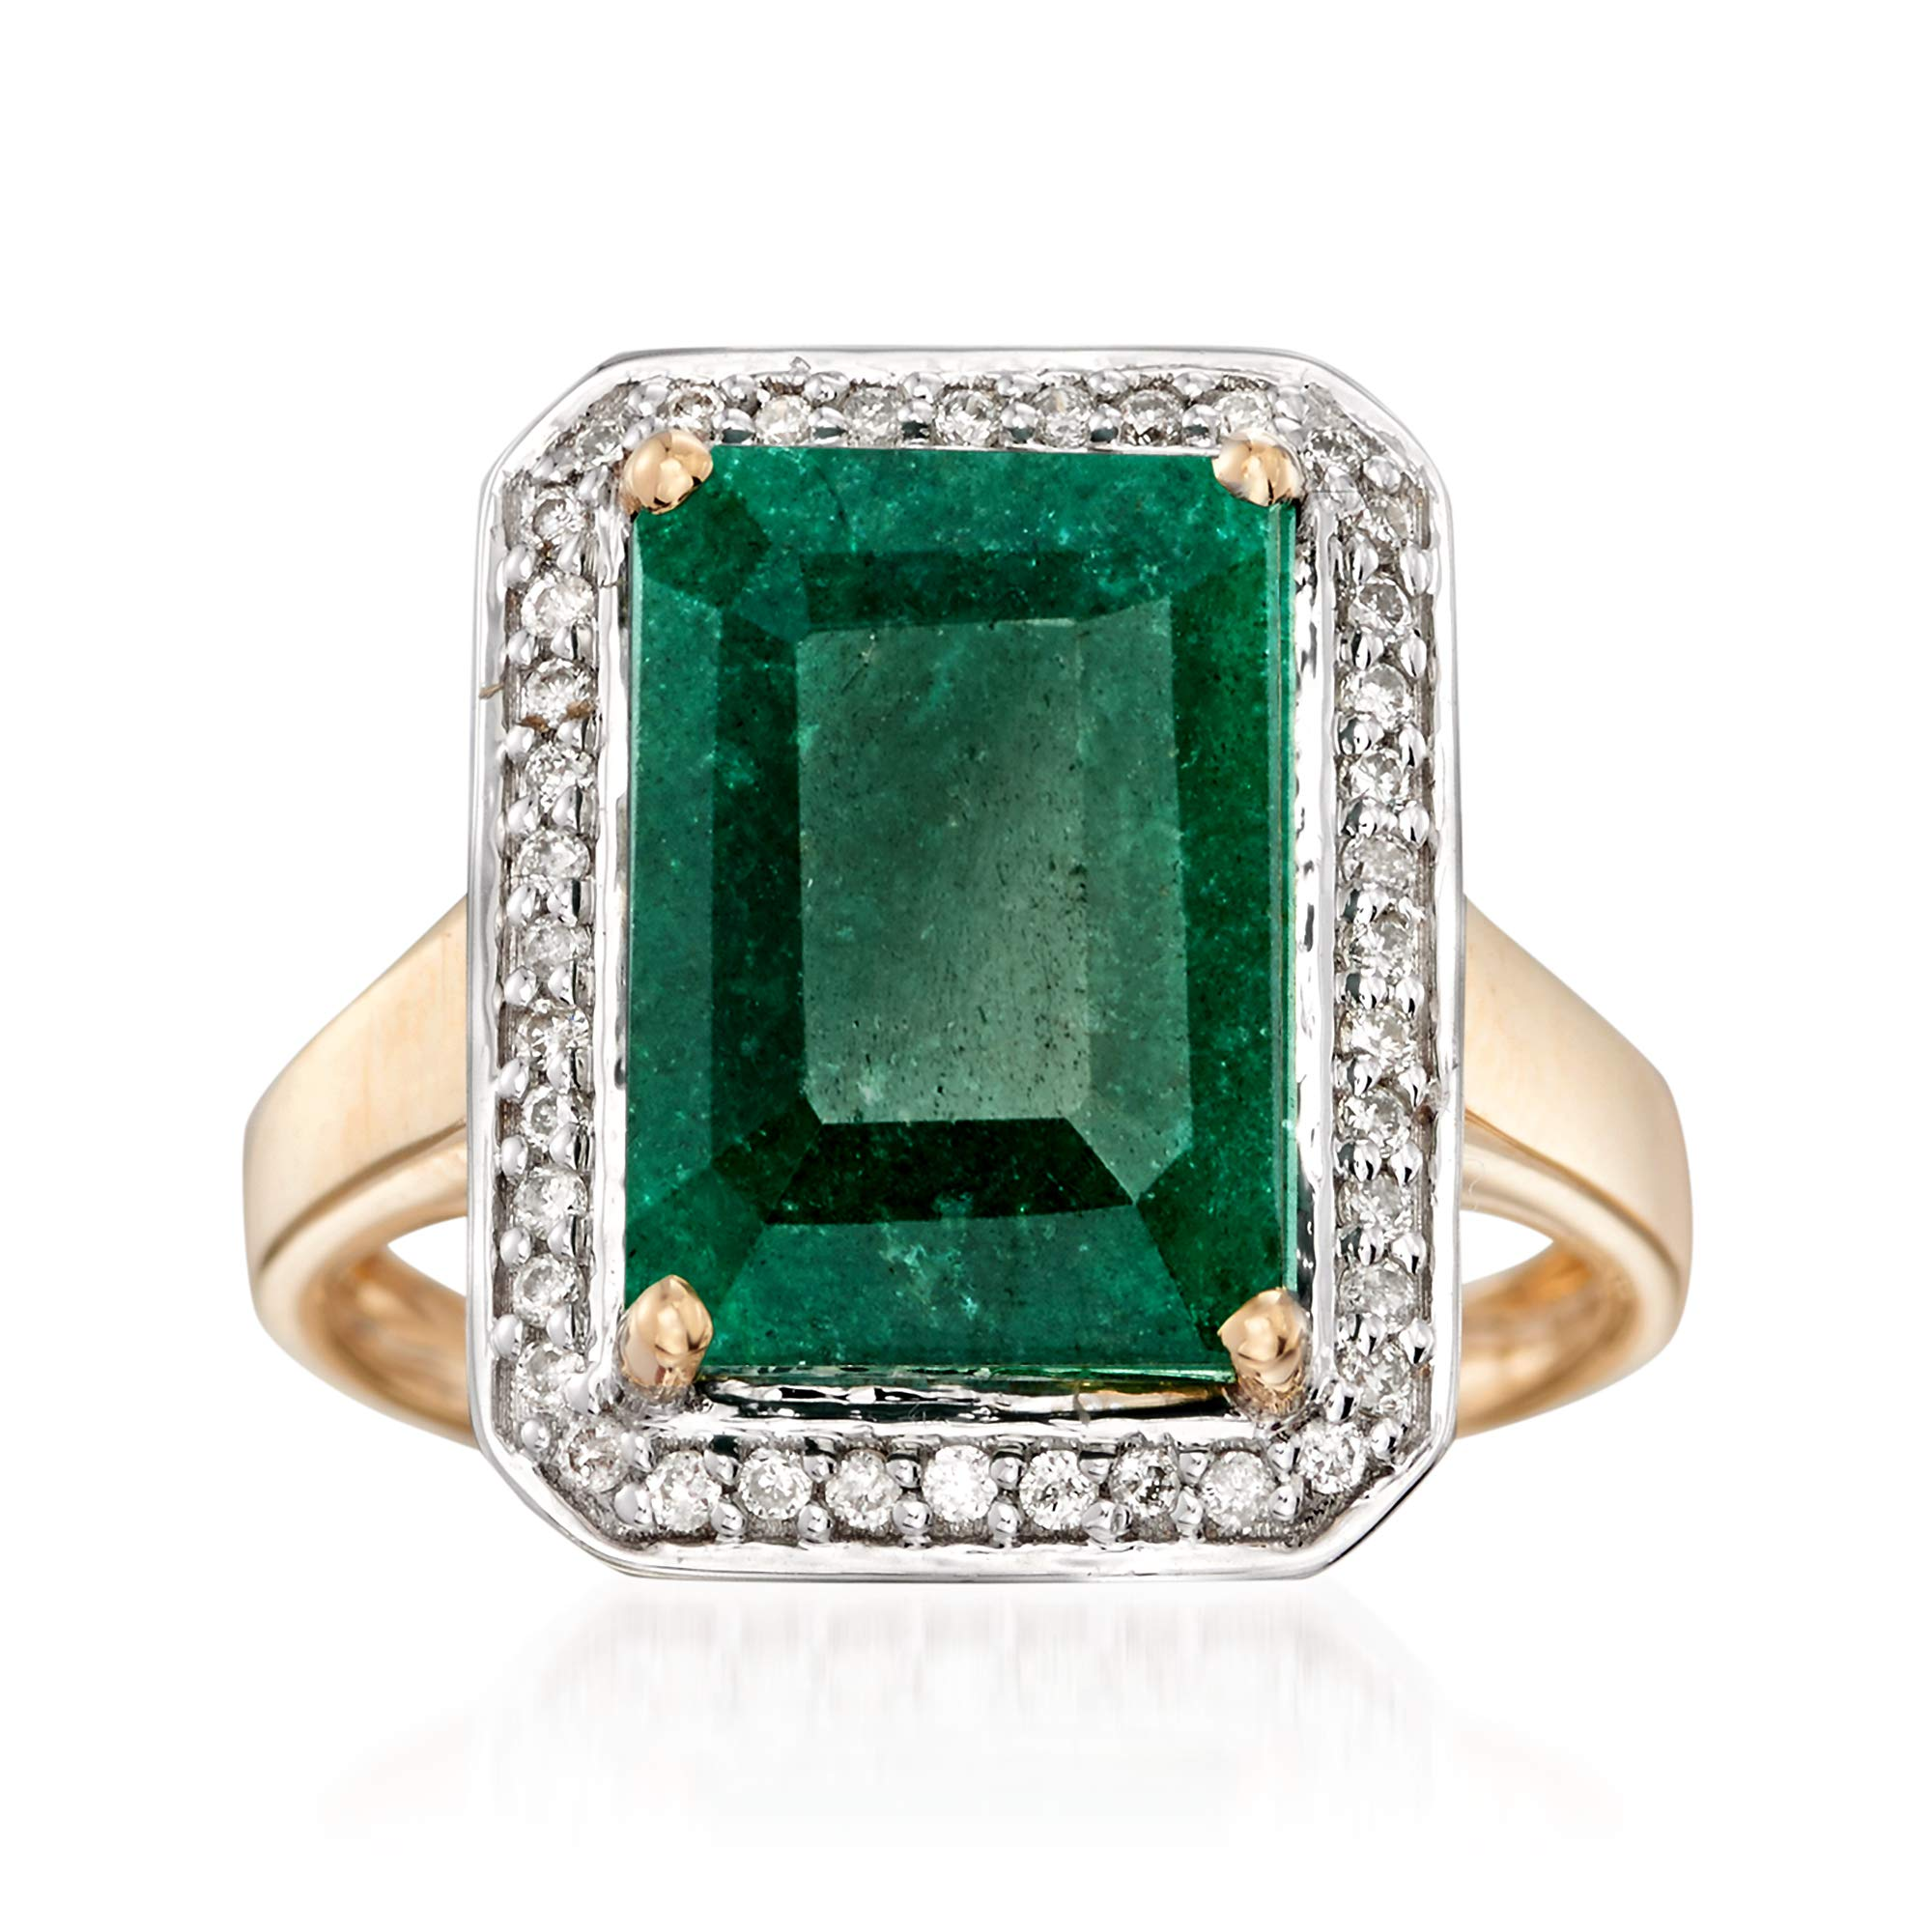 Ross-Simons Certified 5.50 Carat Emerald and .20 ct. t.w. Diamond Ring in 14kt Yellow Gold